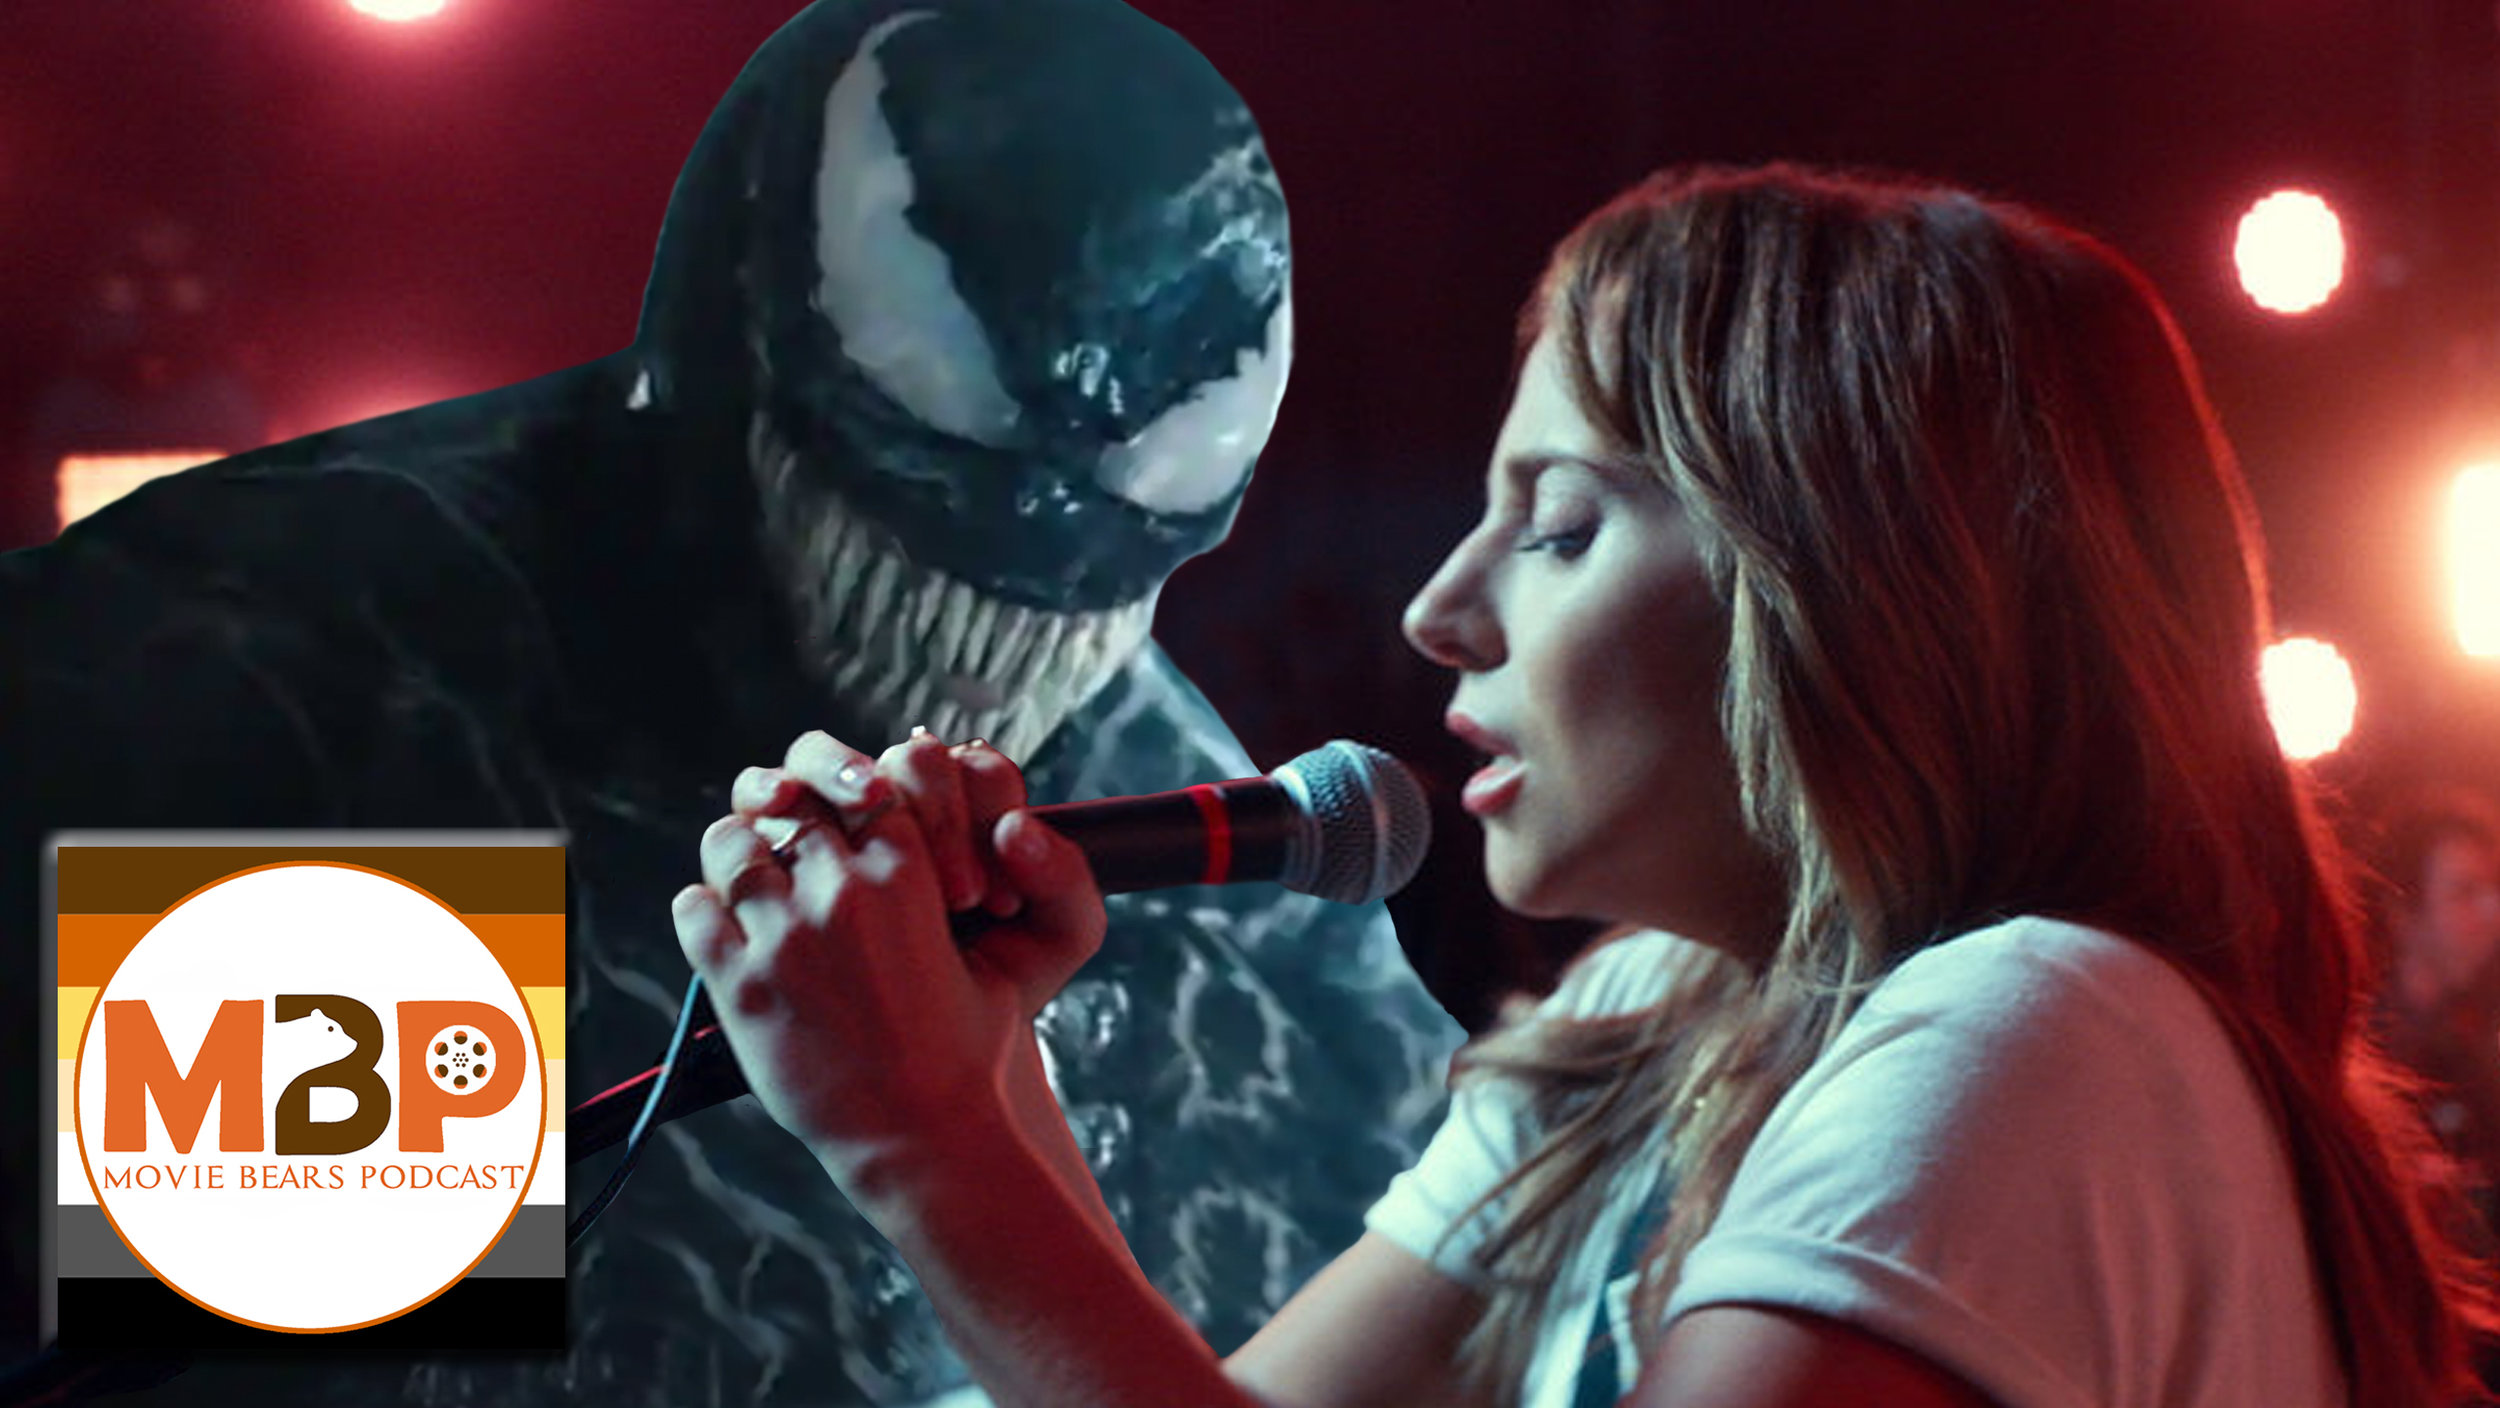 MBP e298 - 'Venom' and 'A Star Is Born' (10/18/18)    It's Venom vs Gaga in the showdown of the century! In this corner, you have 'Venom,' the dark, brooding superhero movie starring Tom Hardy. And in the opposite corner, 'A Star is Born,' another remake of the timeless story, this time starring Bradley Cooper and Lady Gaga. Which comes out victorious? Click through to find out!